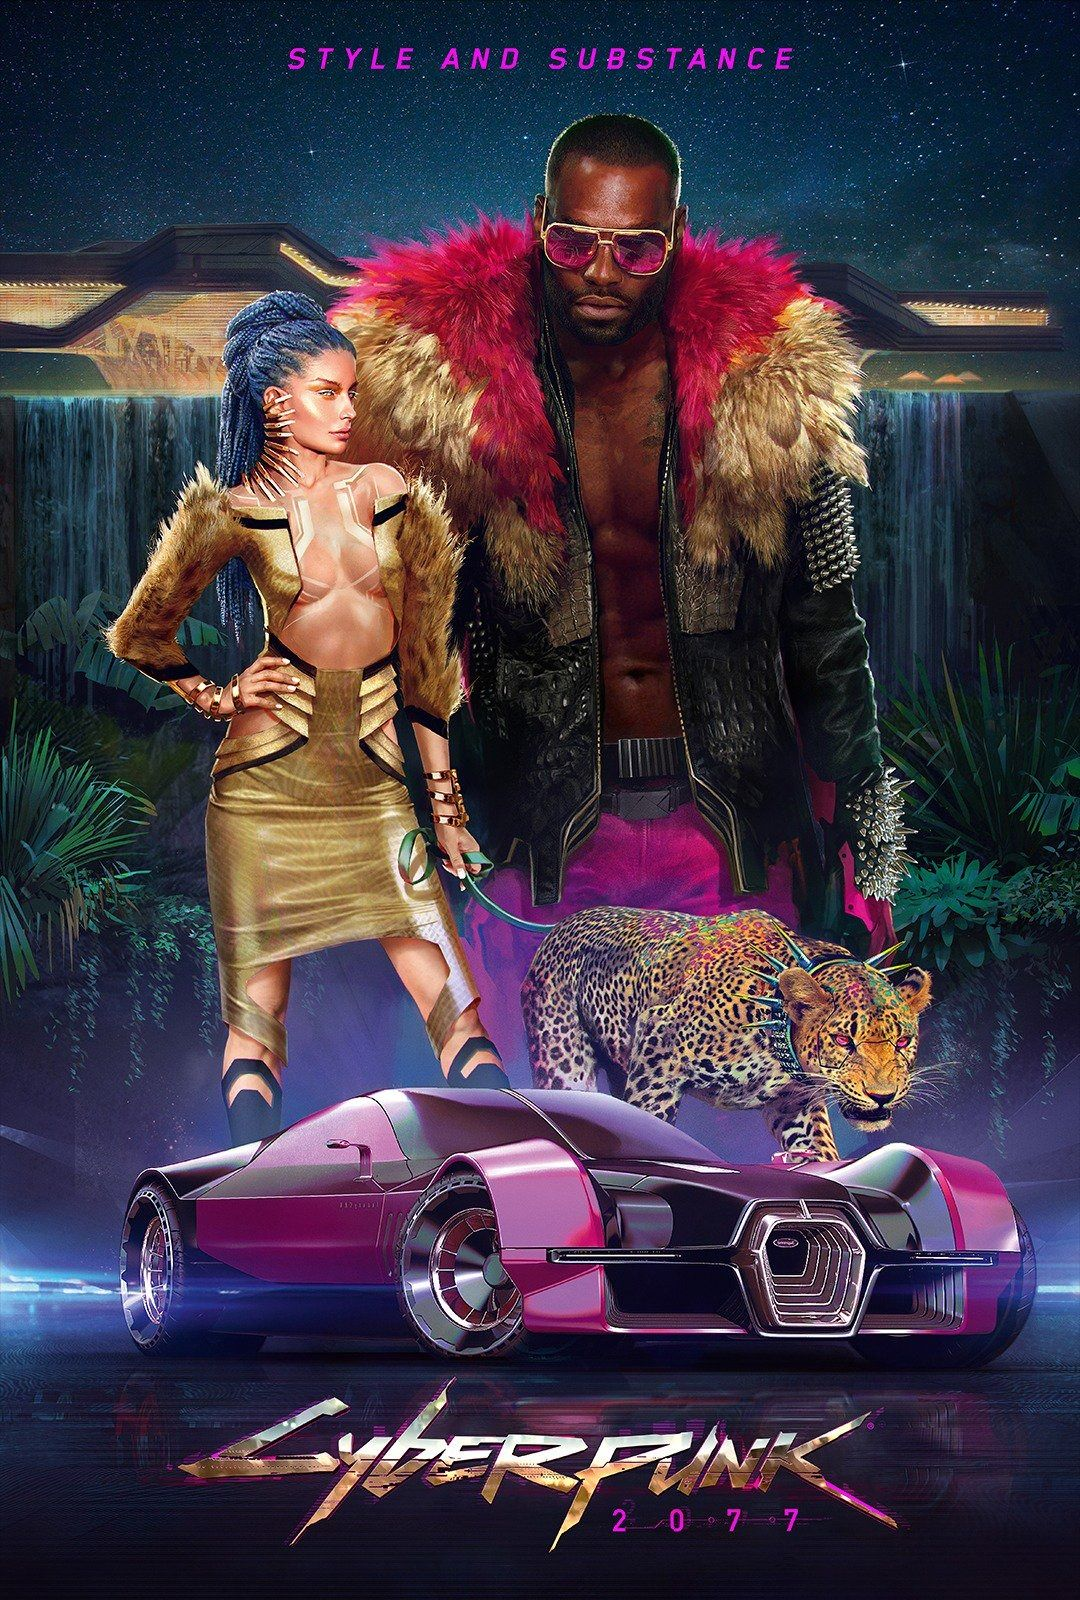 Cyberpunk 2077 Iphone Wallpaper Kolpaper Awesome Free Hd Wallpapers